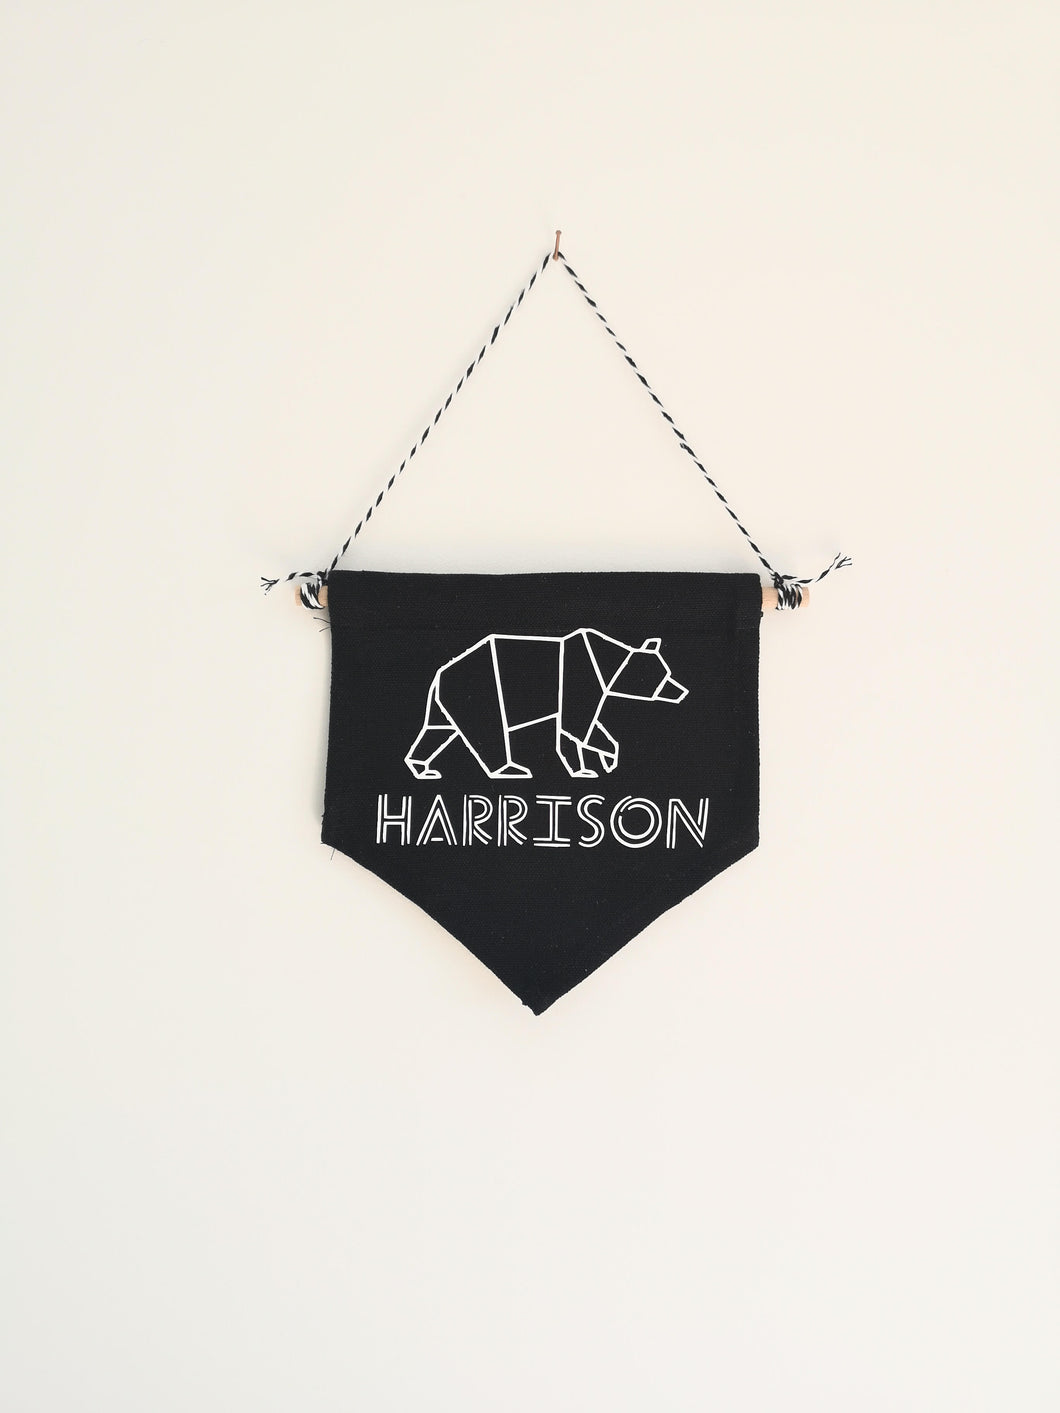 Personalised Pennant Bedroom Decoration - The Monkey Box